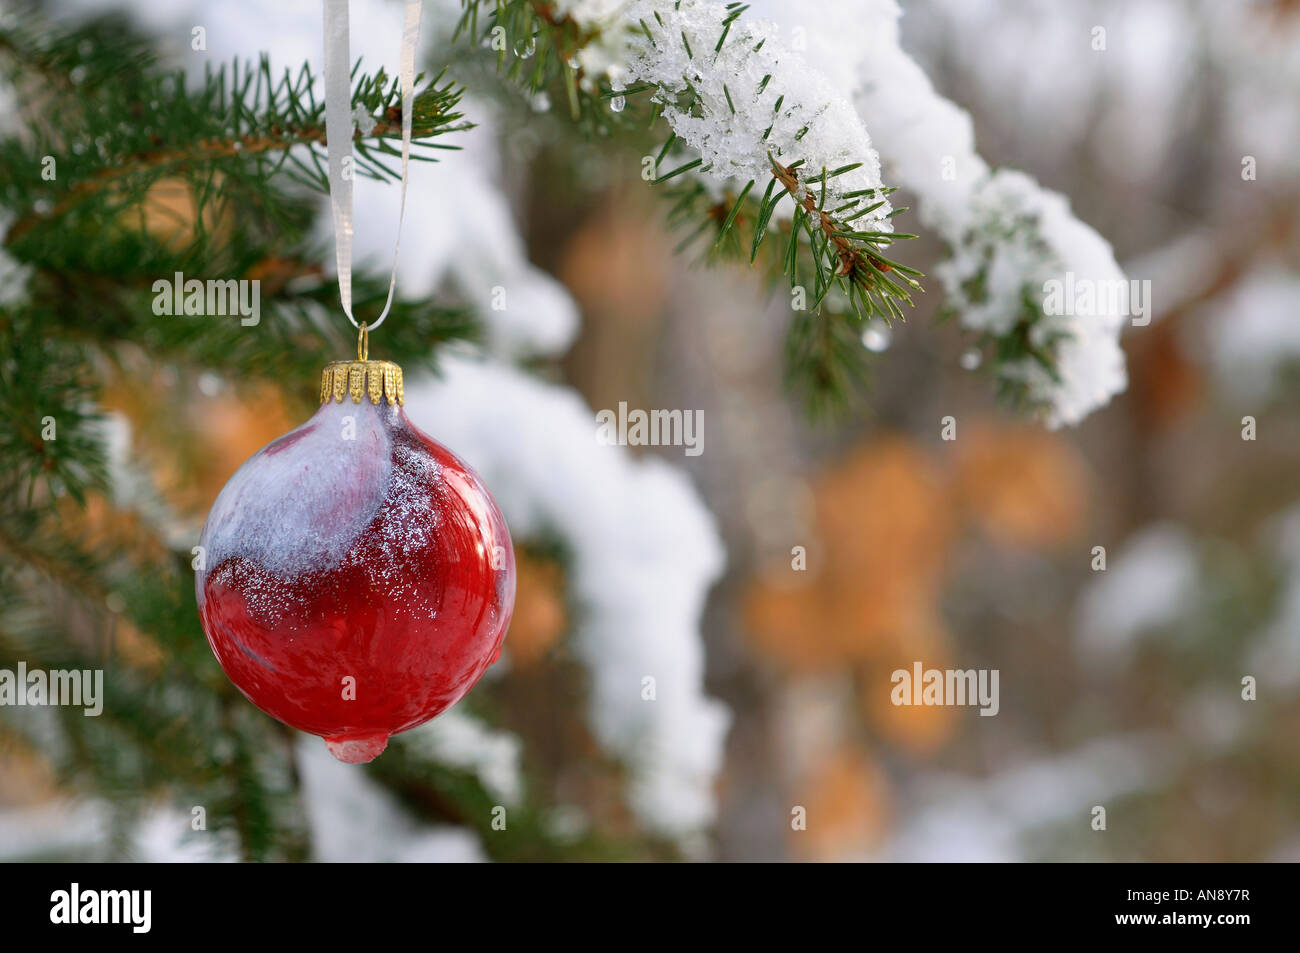 Red Glass Ball Ornament Hanging On Snow Covered Christmas